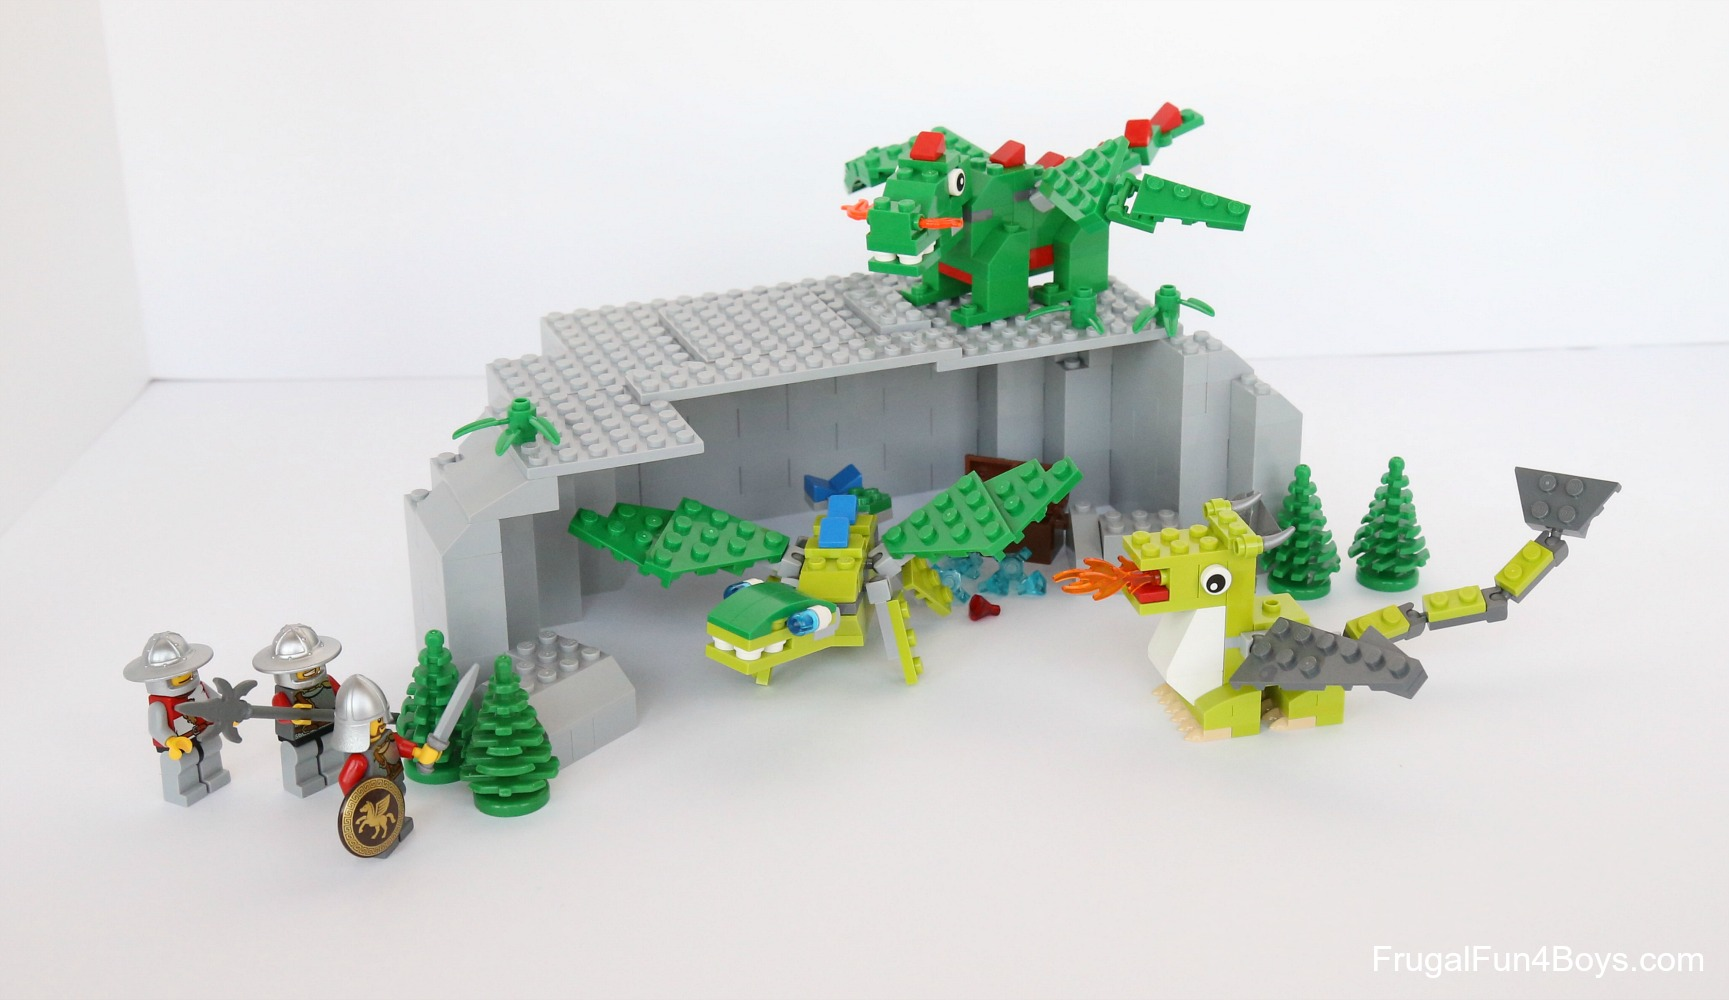 LEGO Mini Dragons Building Instructions